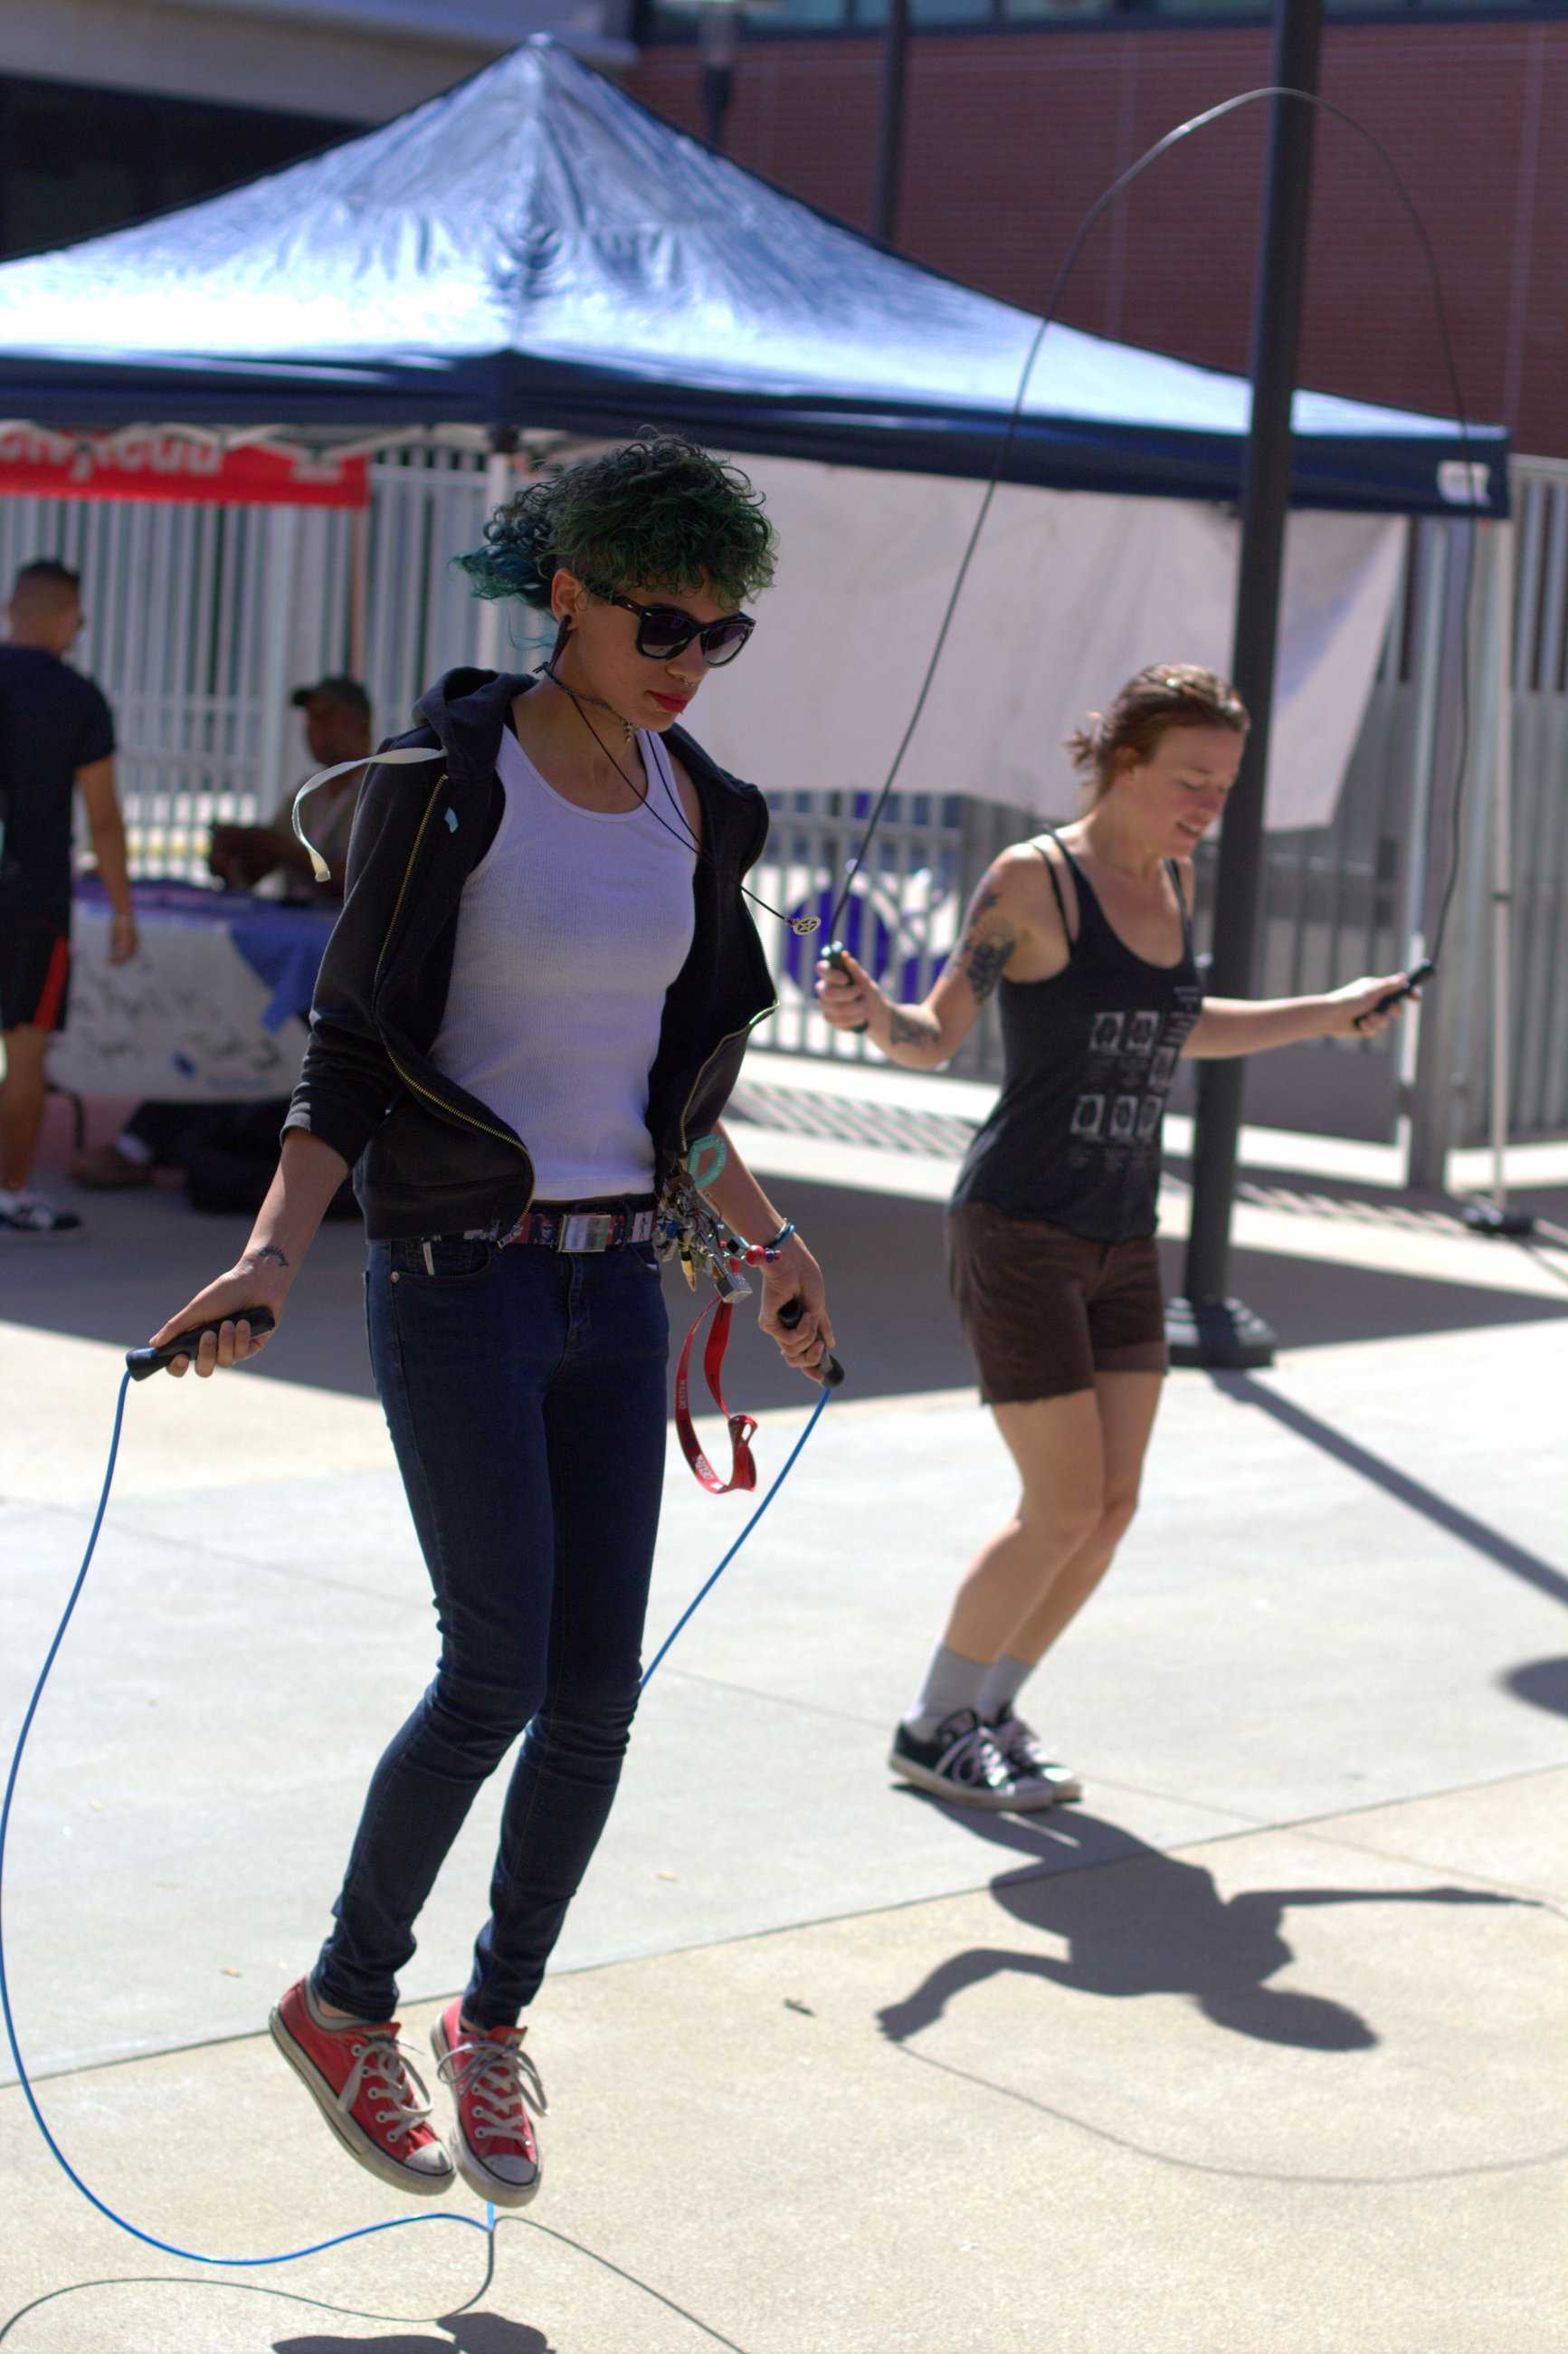 San Diego City College students Alice Kiddo (front) and Bri Rochstein (back) participate at the seventh station during the Health and Wellness Expo on April 10 that was held at the AH/BT quad. Photo credit: David Pradel